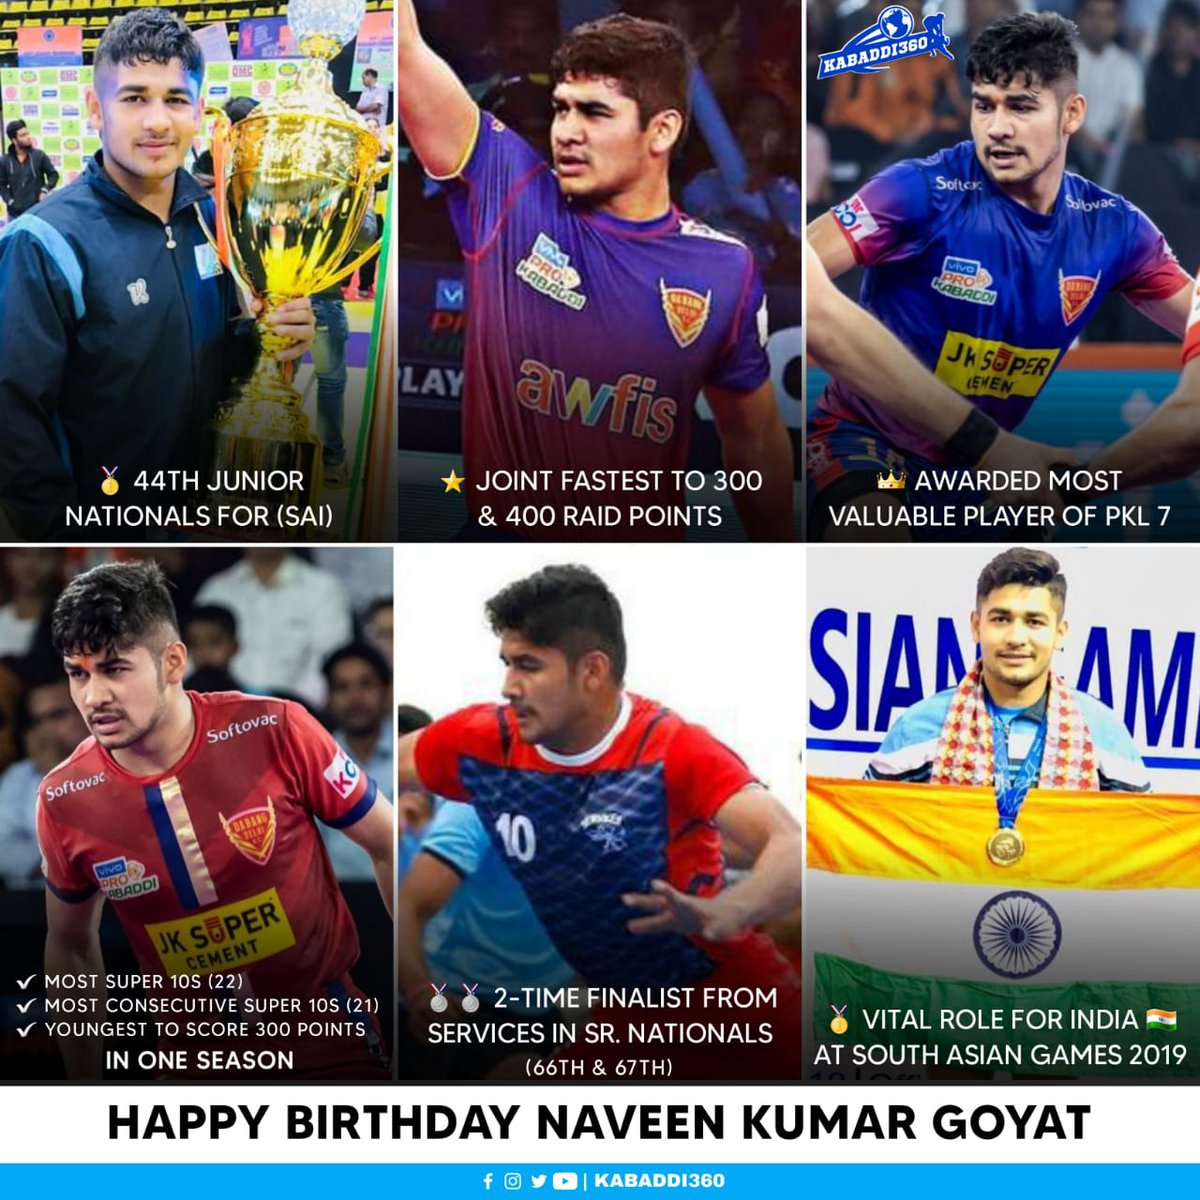 Naveen Express 🚉 celebrates his 21st birthday today 🎂 Wishing the young talent Naveen Kumar a very happy birthday!   #NaveenKumar #HappyBirthdayNaveen #HappyBirthday #Kabaddi360